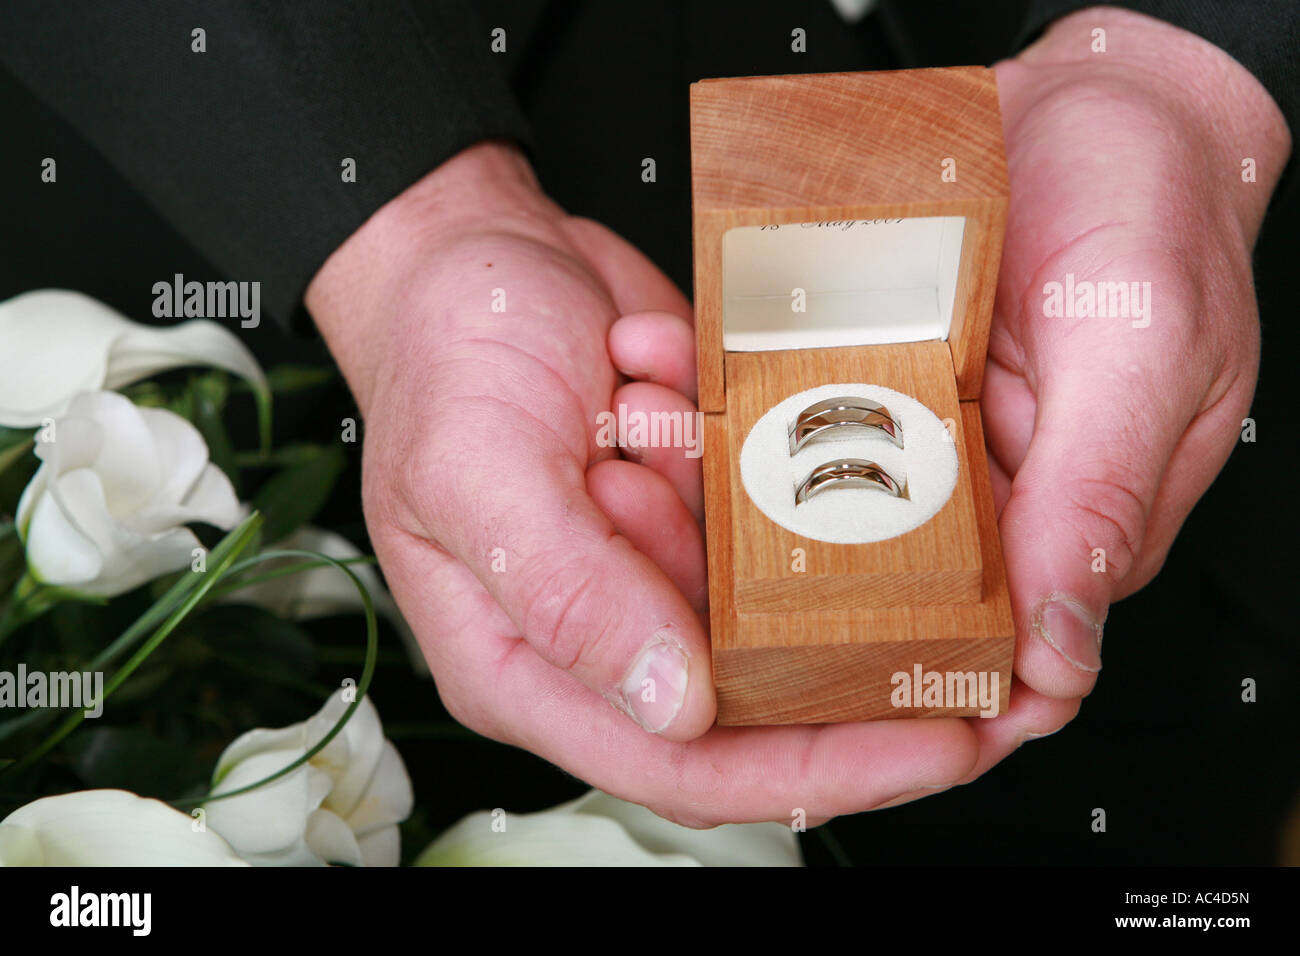 Rings Box Stock Photos & Rings Box Stock Images - Alamy